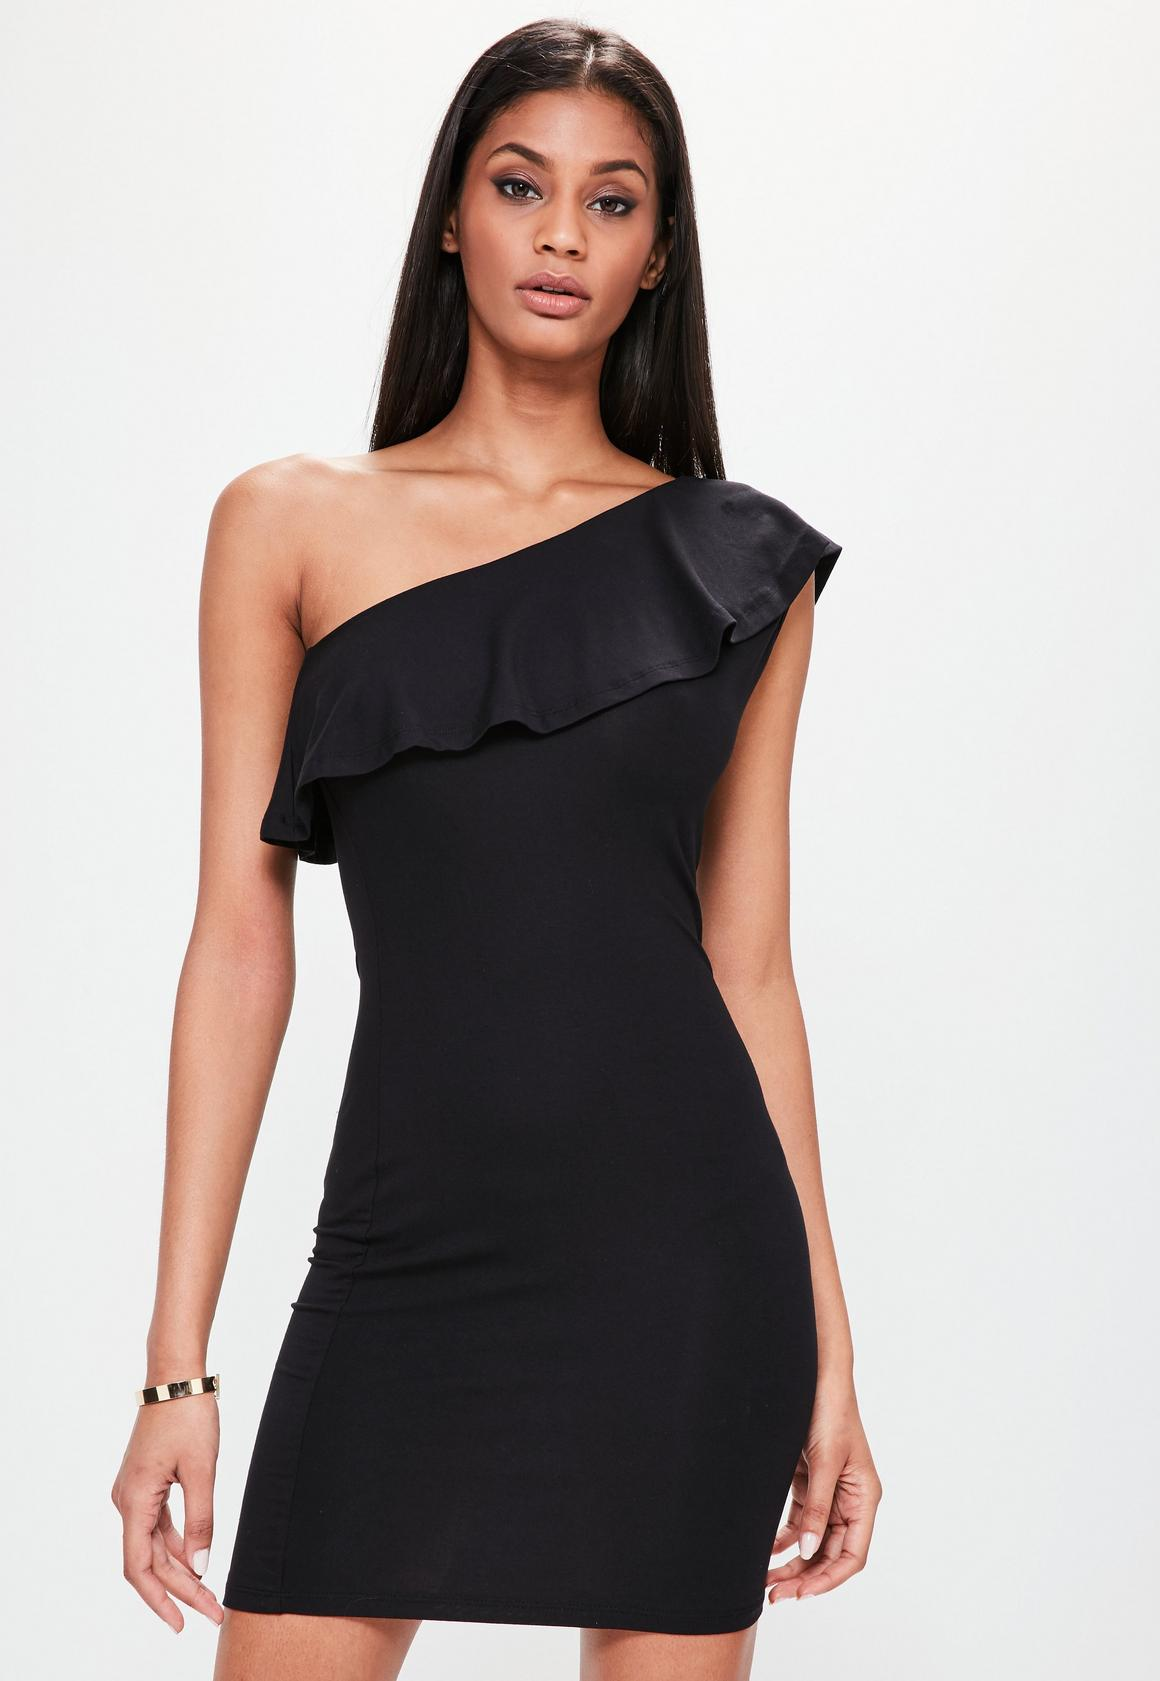 Black One Shoulder Frill Mini Dress | Missguided Ireland